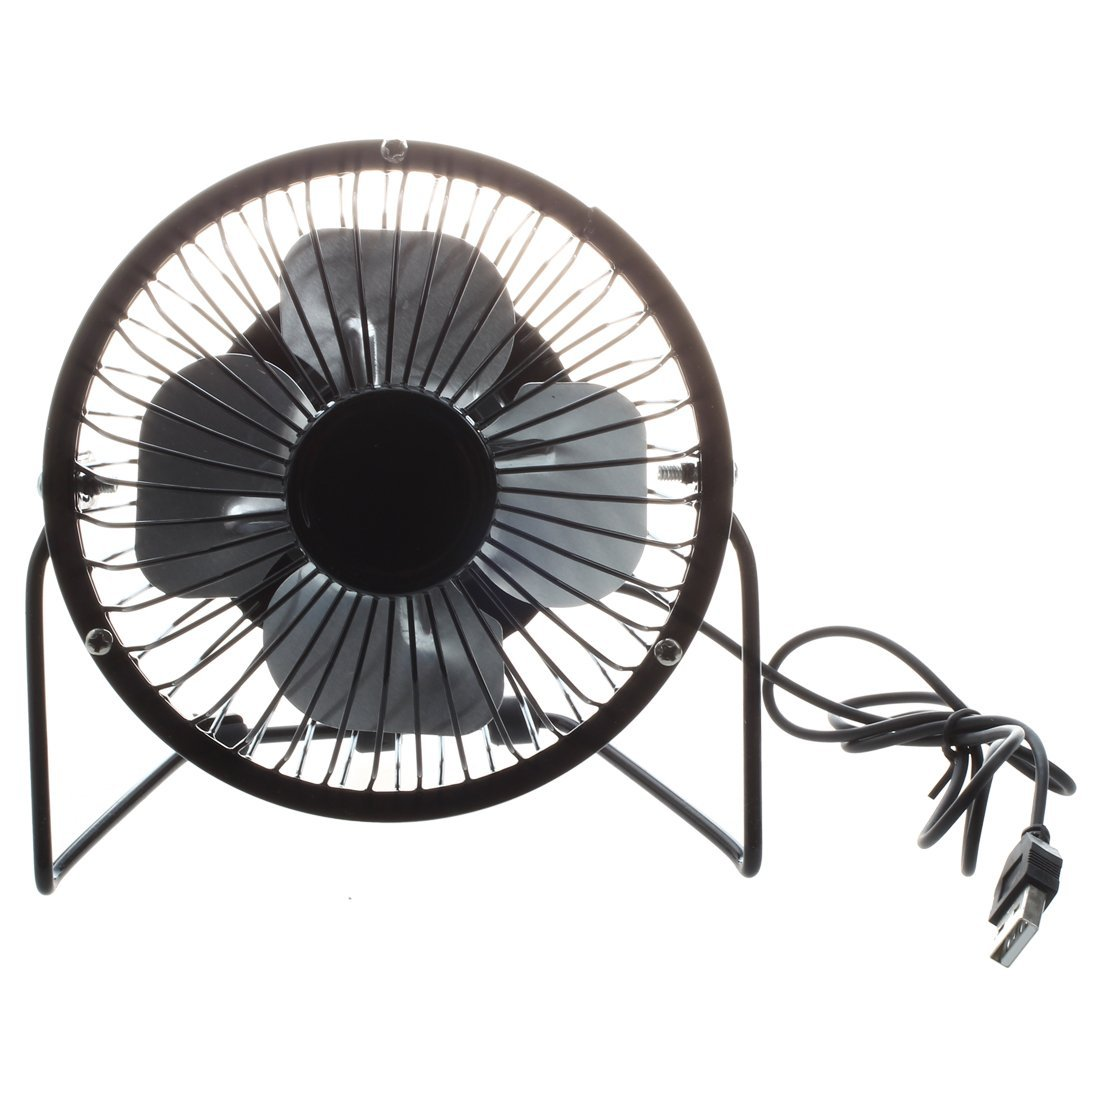 SODIAL(R) 4-inch 360-degree Rotating USB Powered Metal Electric Mini Desk Fan for PC /Laptop /Notebook (Black)